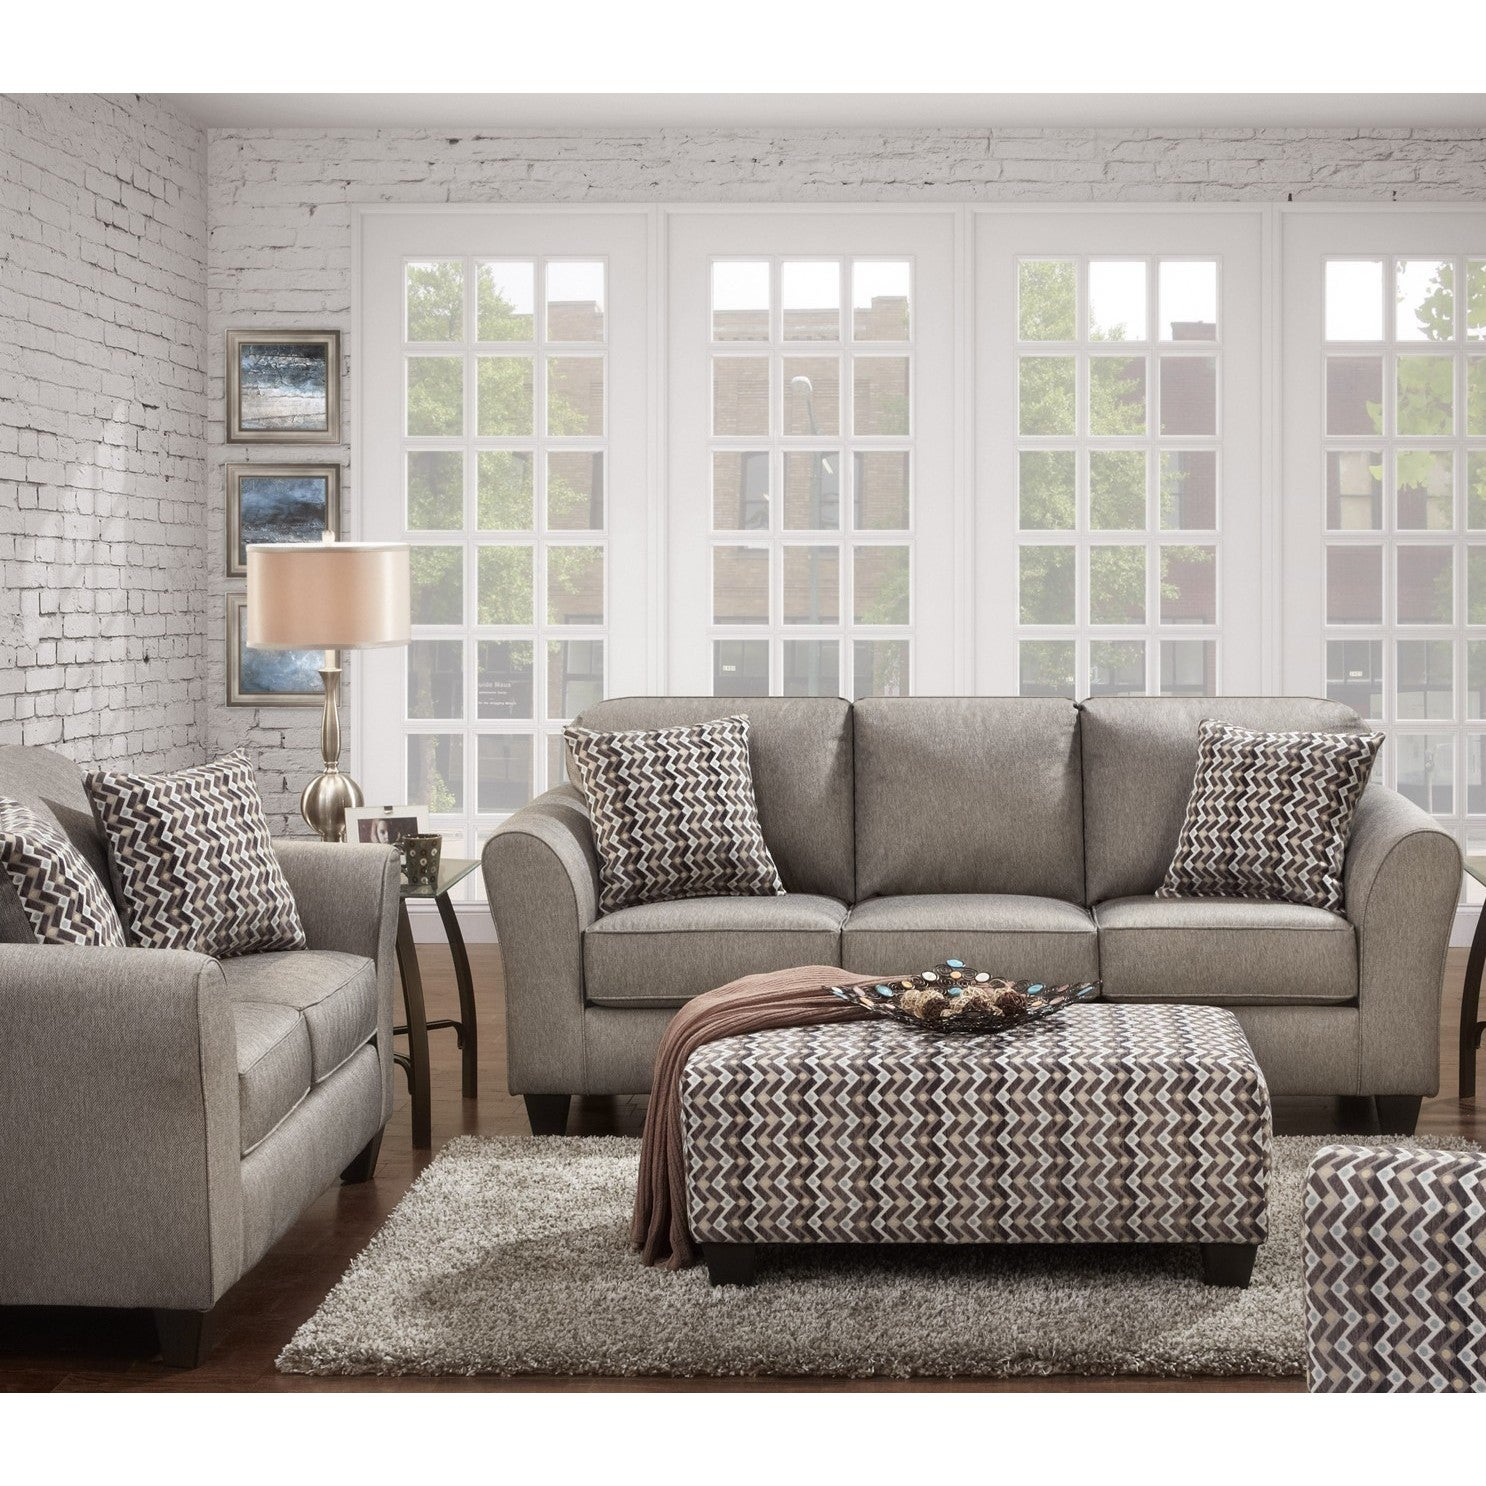 Urban Sofas Couches Online At Our Best Living Room Furniture Deals